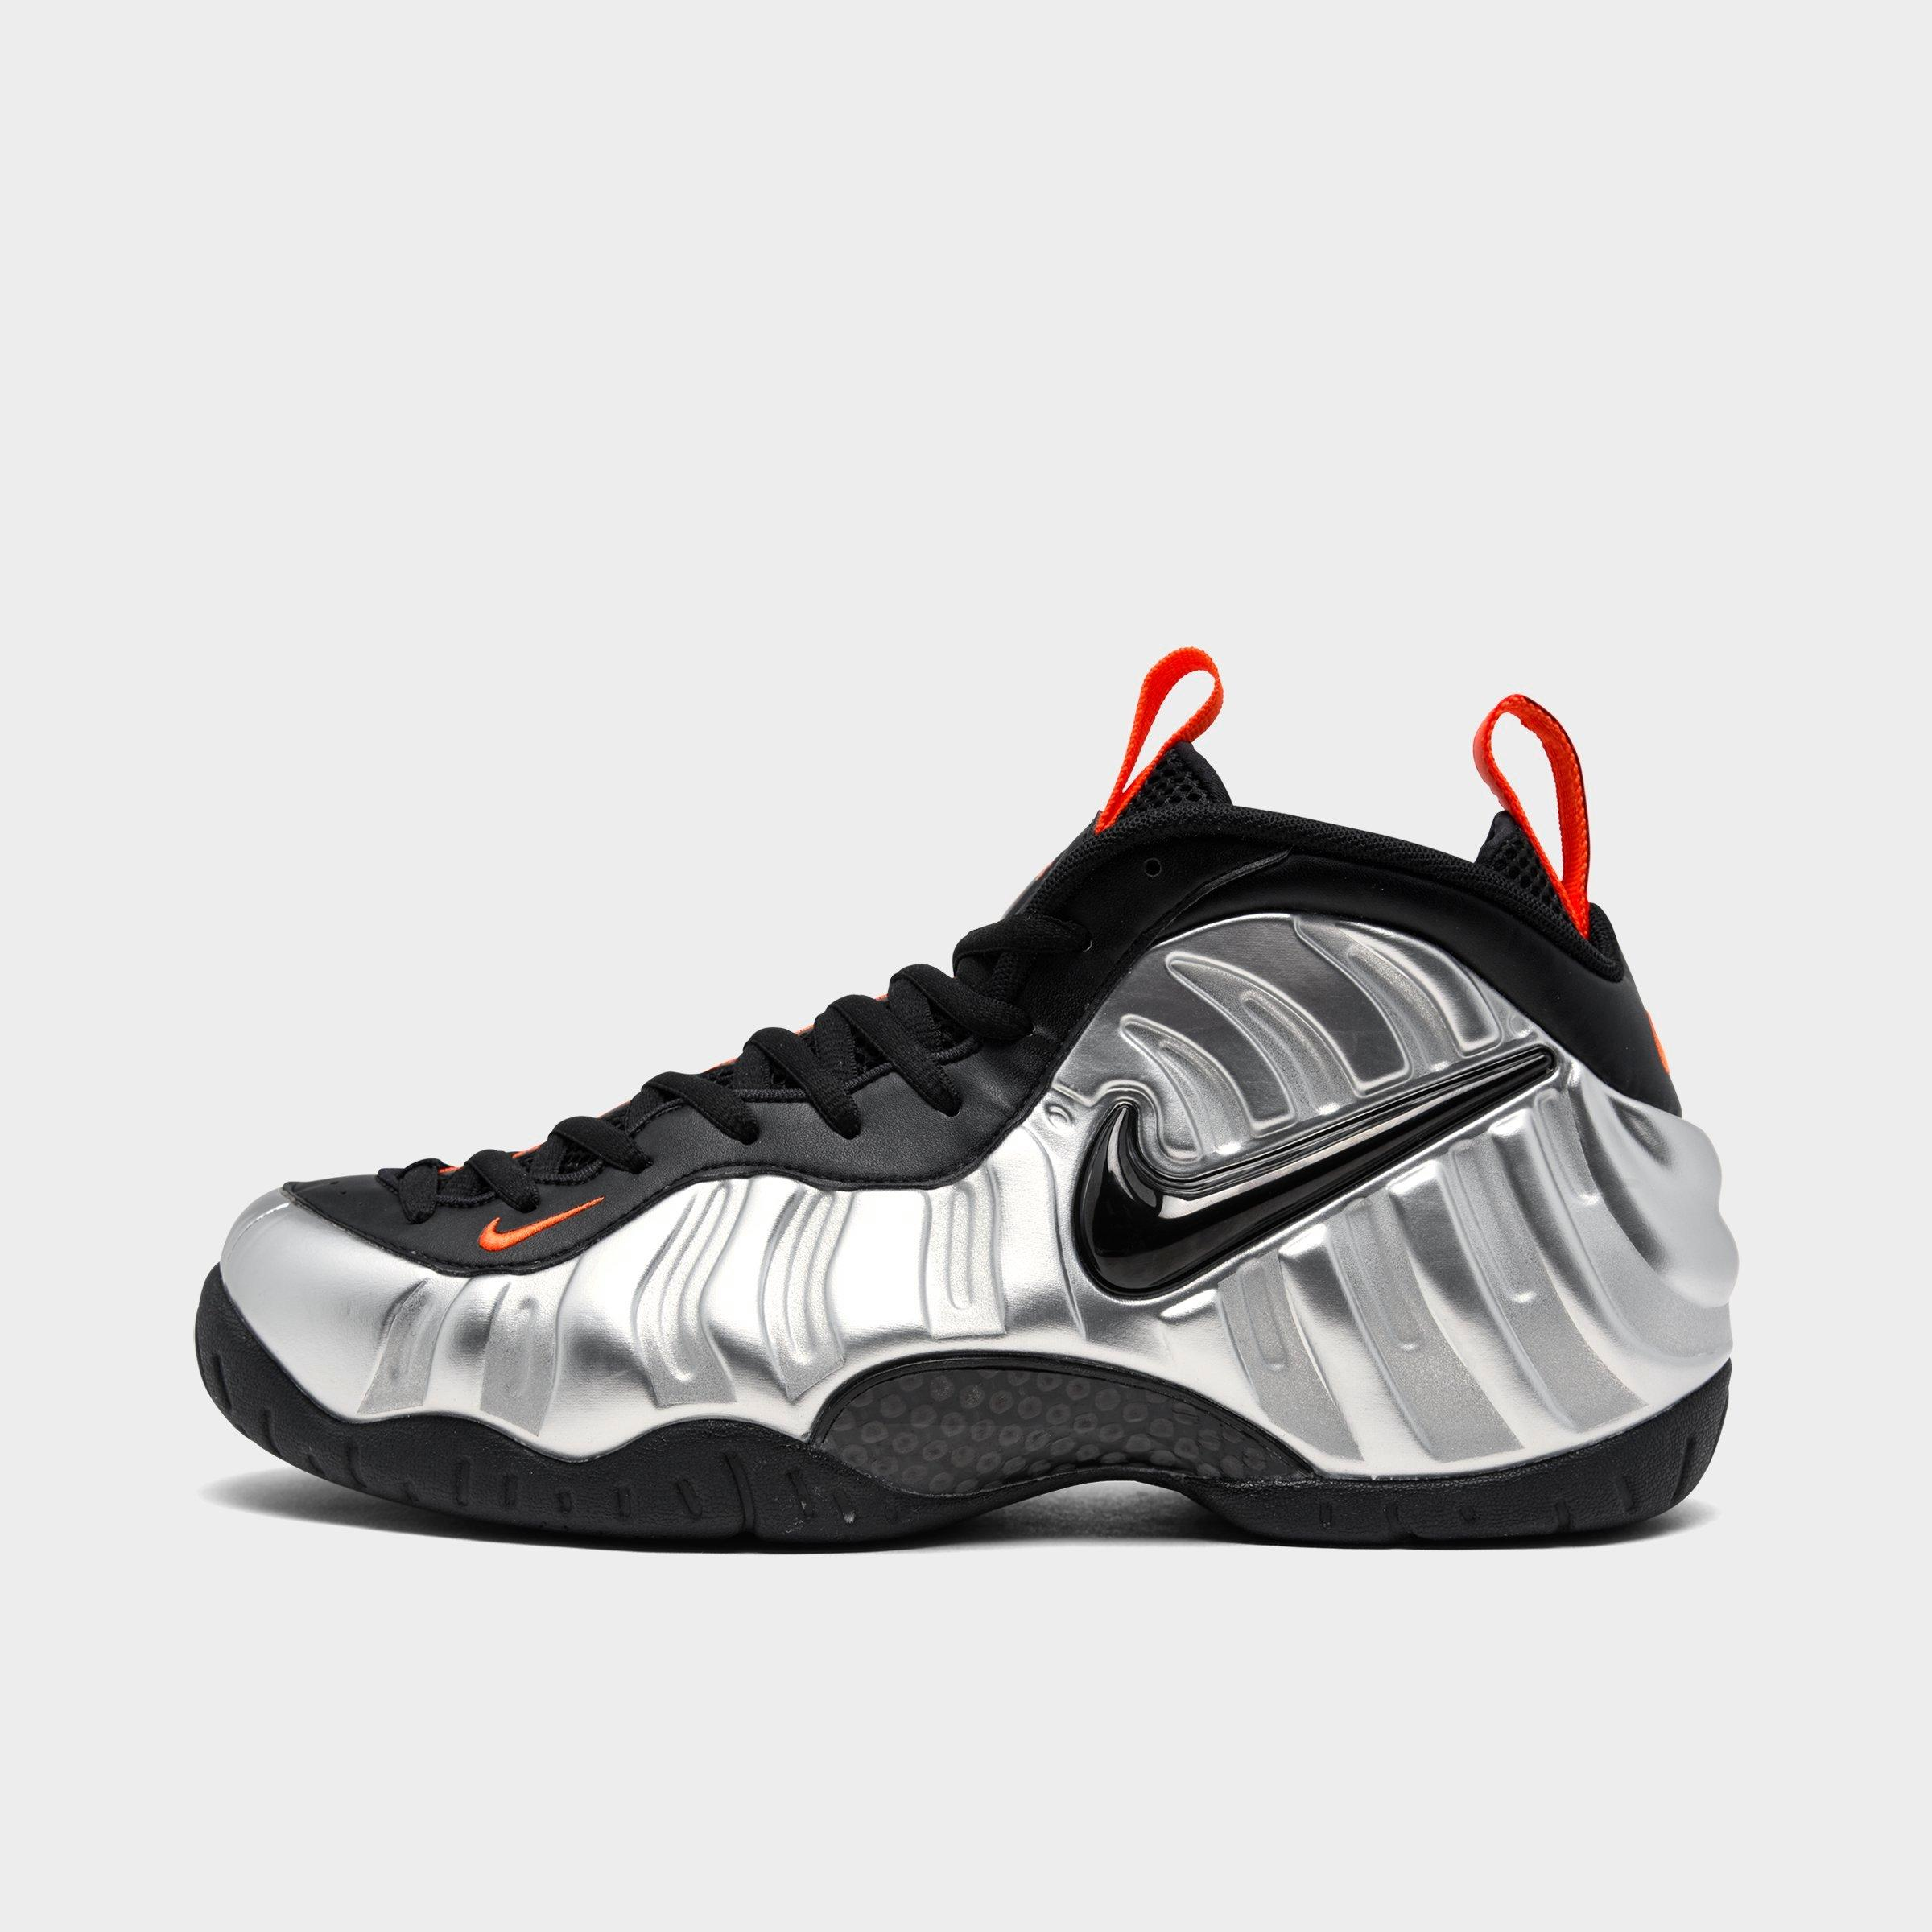 Nike Shoes Air Foamposite One Paranorman Poshmark